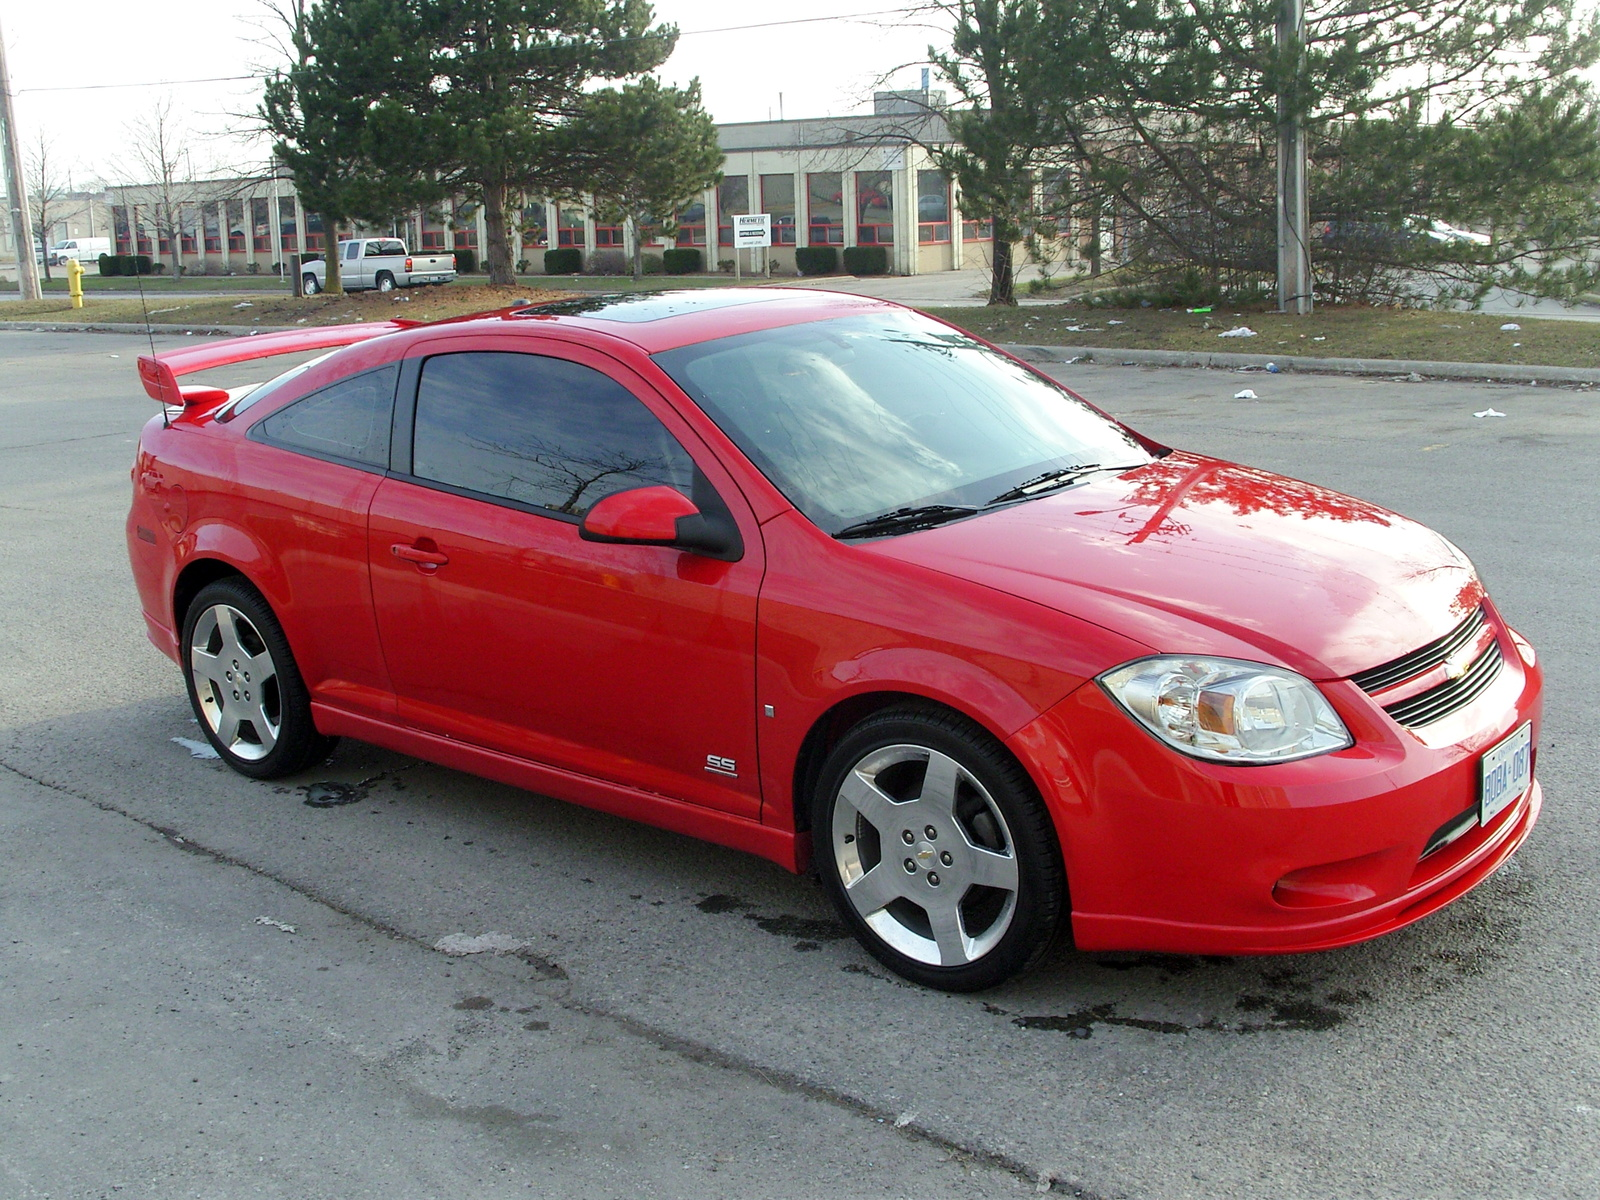 2007 chevrolet cobalt exterior pictures cargurus. Cars Review. Best American Auto & Cars Review